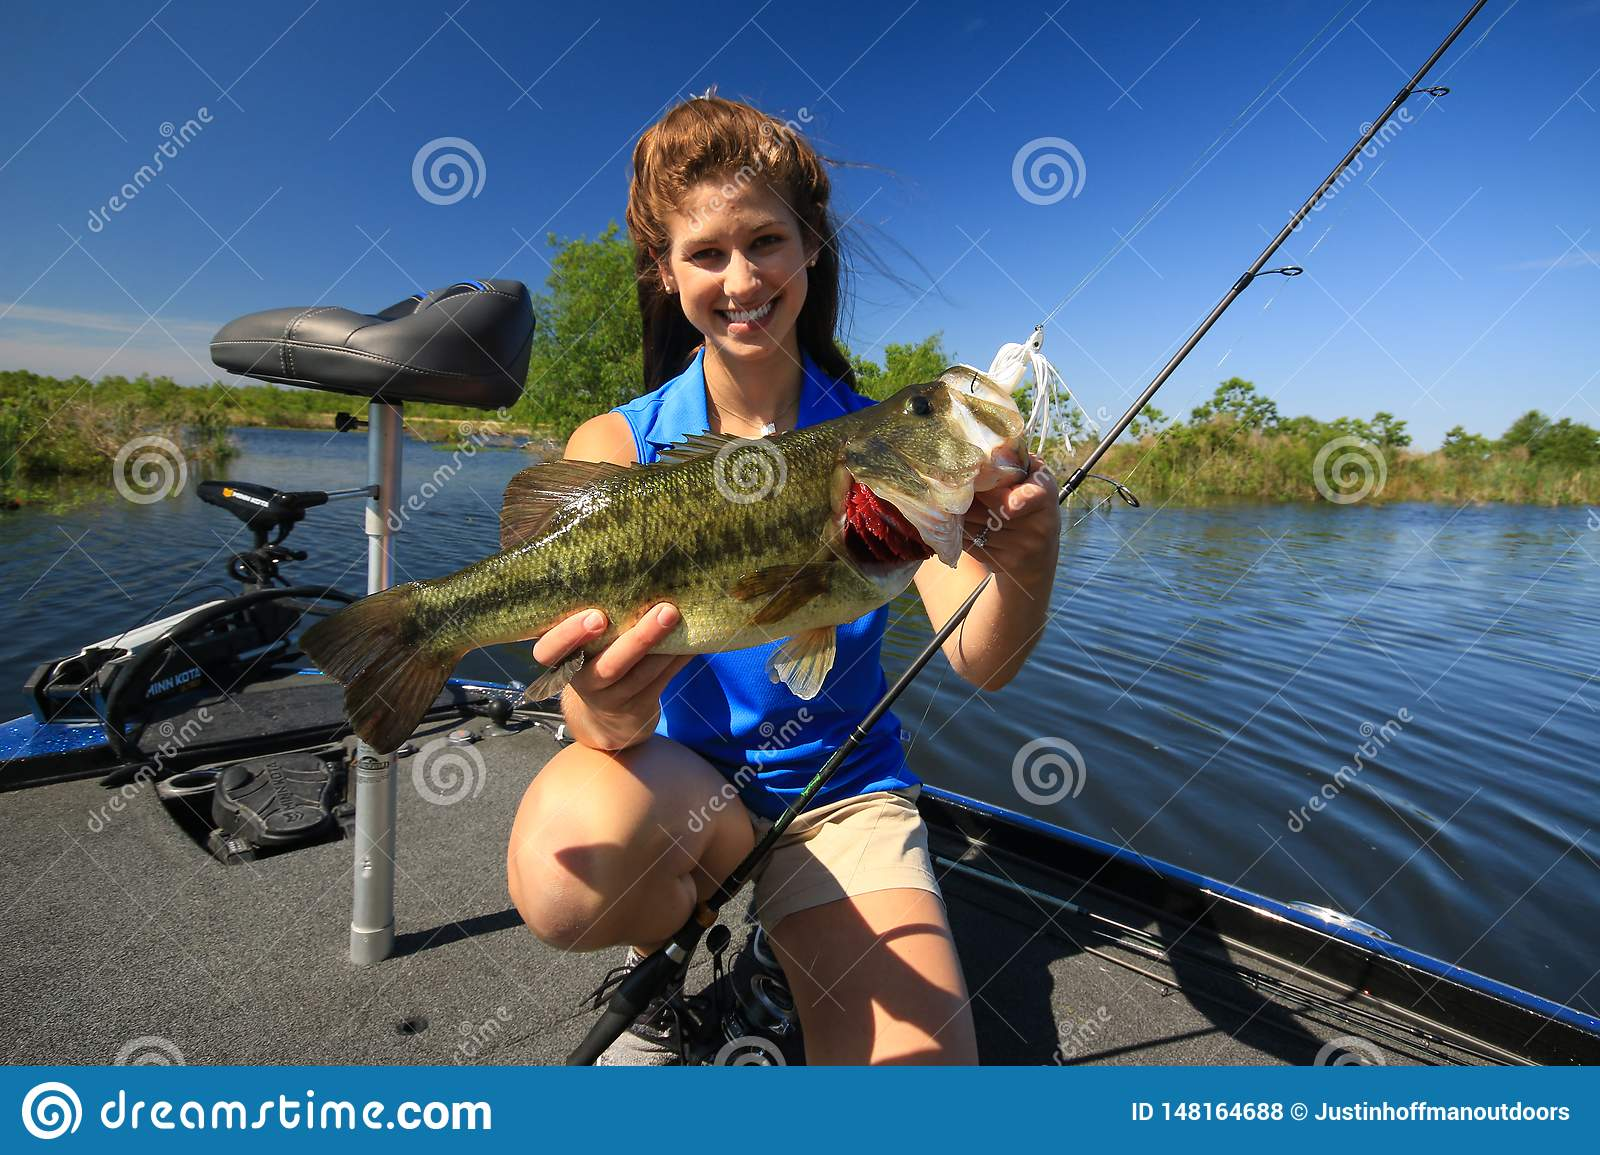 Woman Holding Large Mouth Bass Caught Fishing From Boat